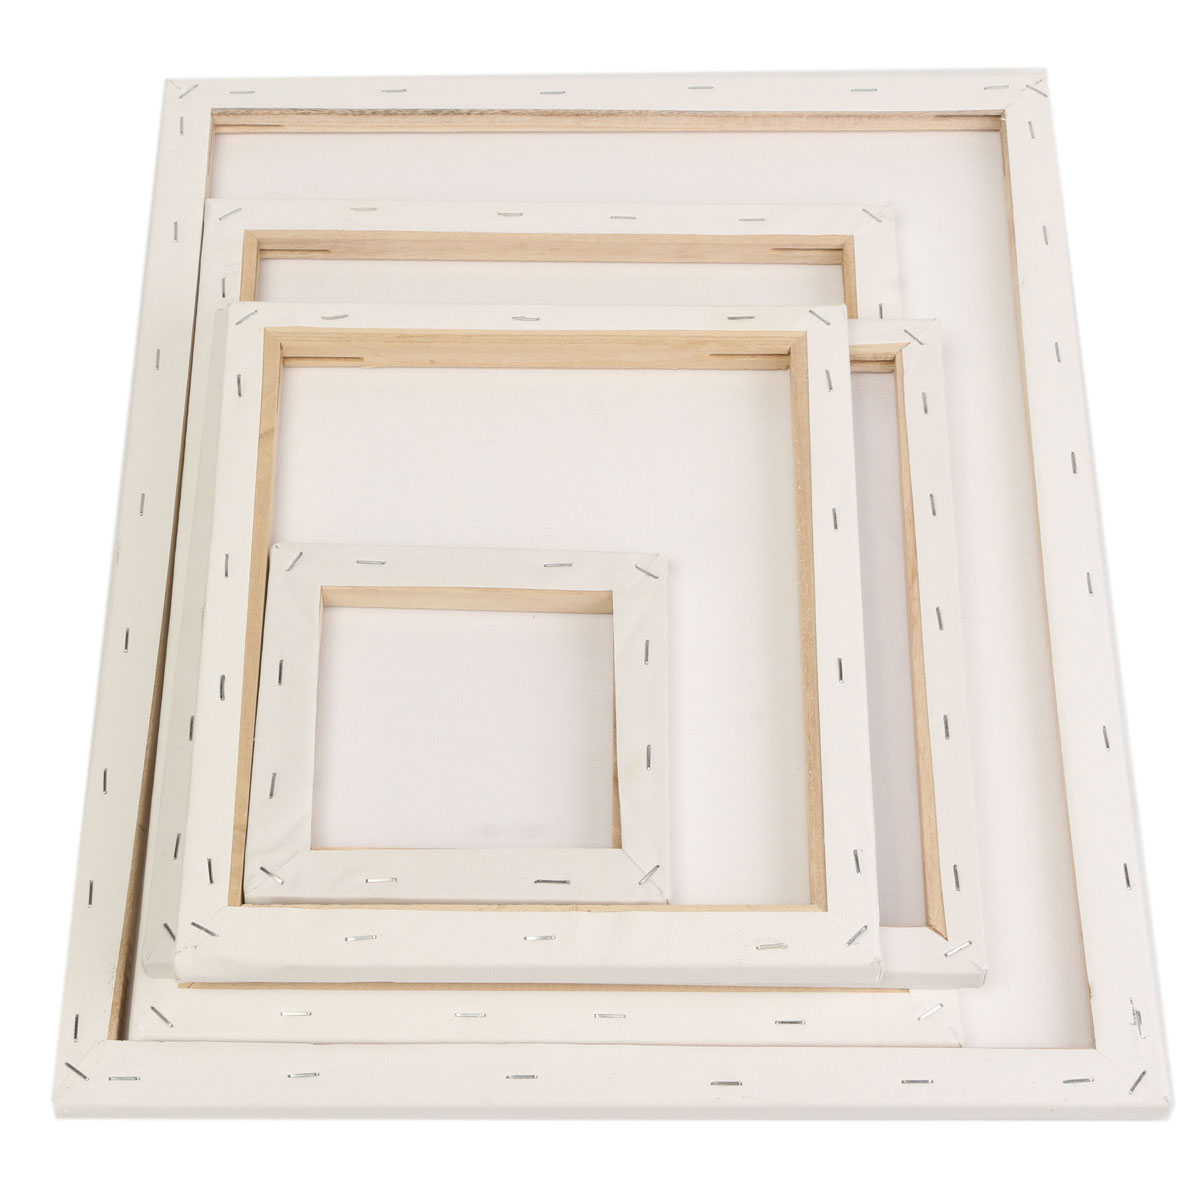 1Piece White Blank Square Artist Canvas Painting Drawing Board Wooden Frame For Canvas Oil Painting For Primed Oil Acrylic Paint